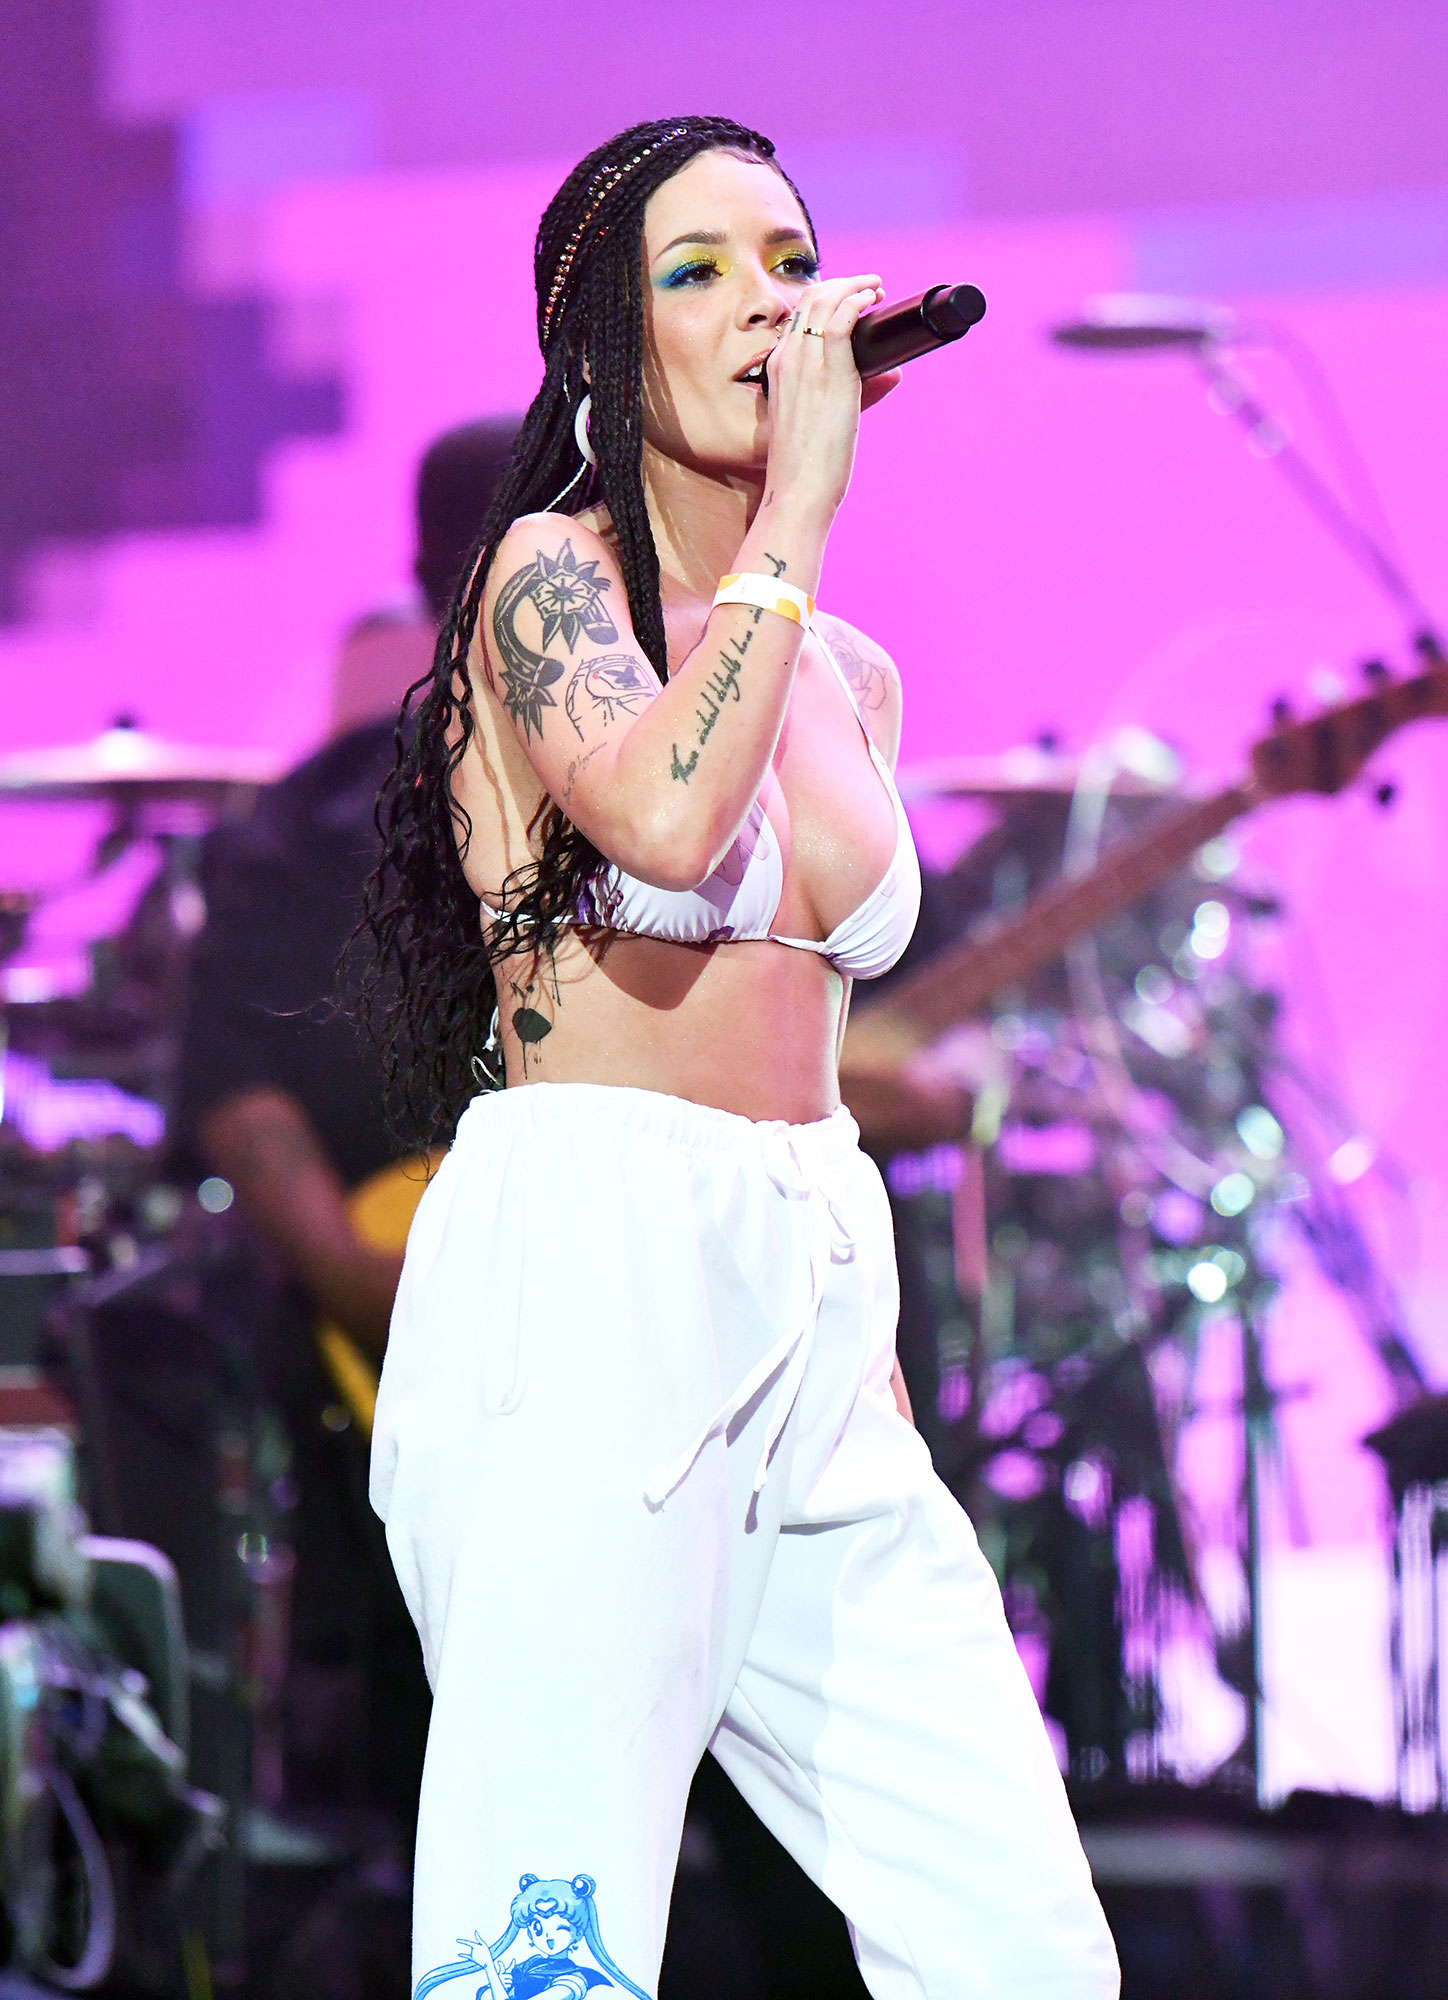 halsey coachella 2019 hair makeup beauty - The performer's multi-colored eye makeup was a major standout. Using the yellow and lime green shades from NYX Professional Makeup's Ultimate Shadow Palette , makeup artist Denika Bedrossian faded these into a two-tone blue by blending them out to create a gradation of color.